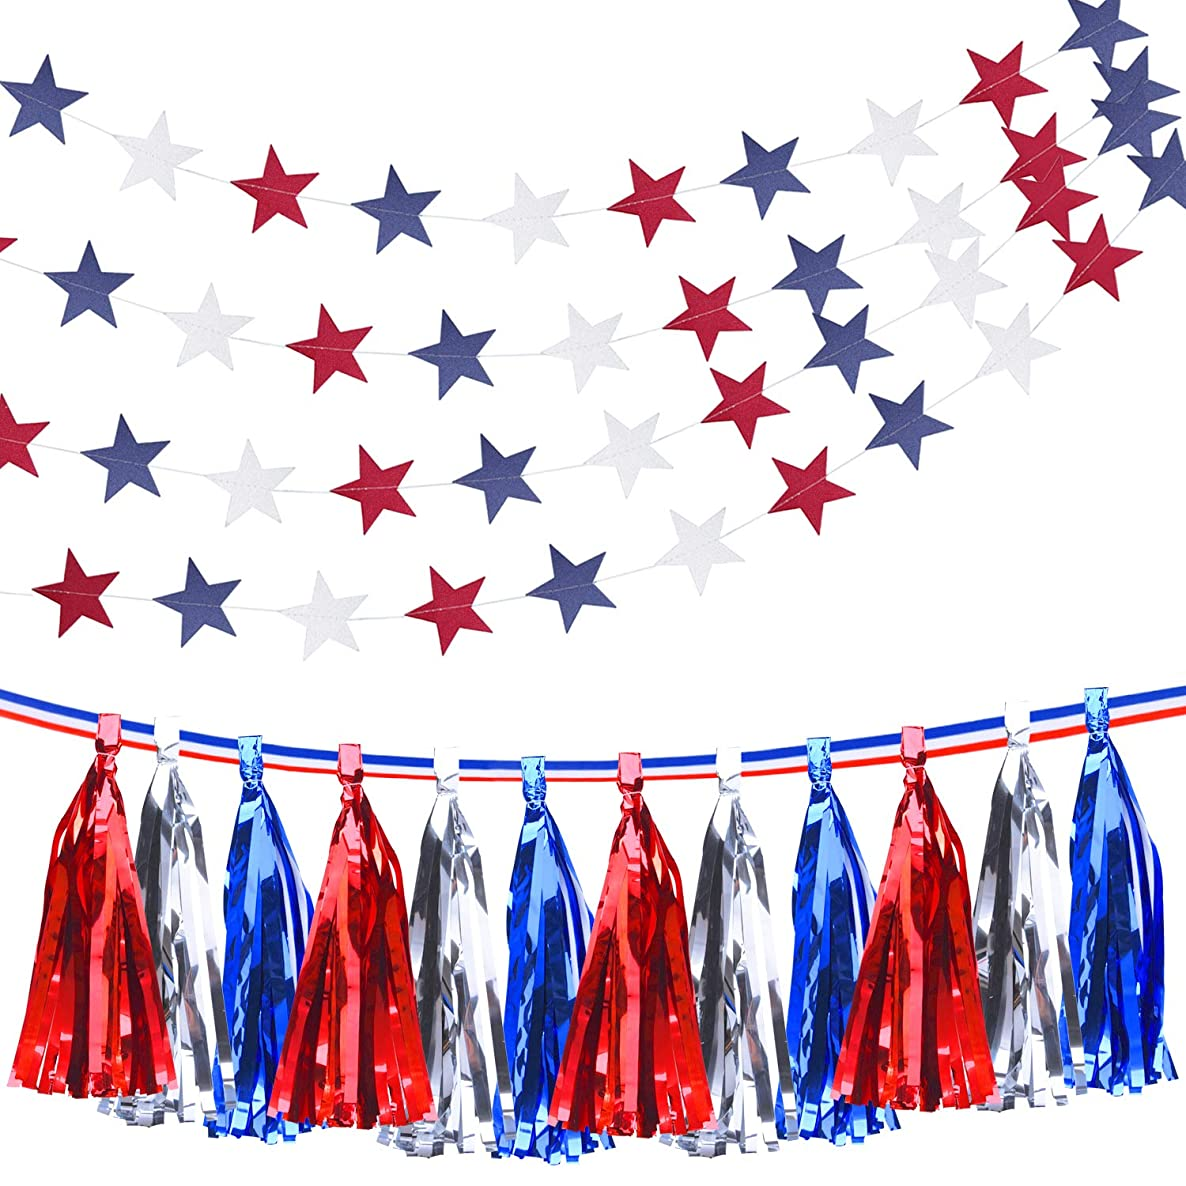 Livder 20 Pieces Metallic Tassels with Ribbon, Star Streamers Hanging Banner for 4th of July National Day and Election Patriotic Party Decorations